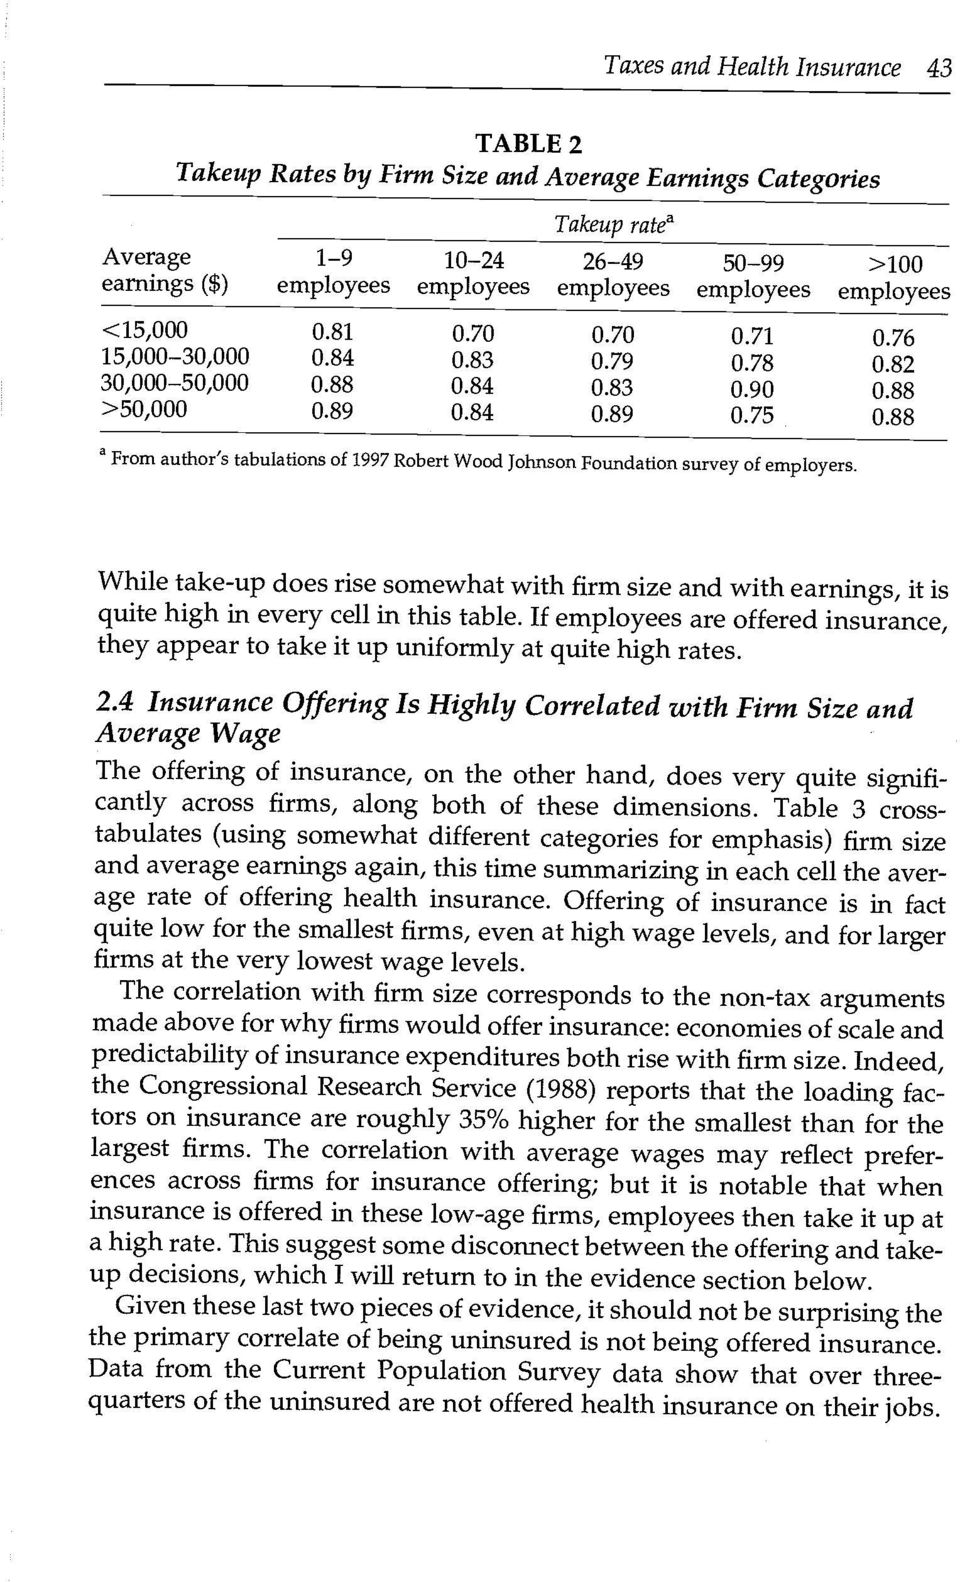 88 a From author's tabulations of 1997 Robert Wood Johnson Foundation survey of employers.